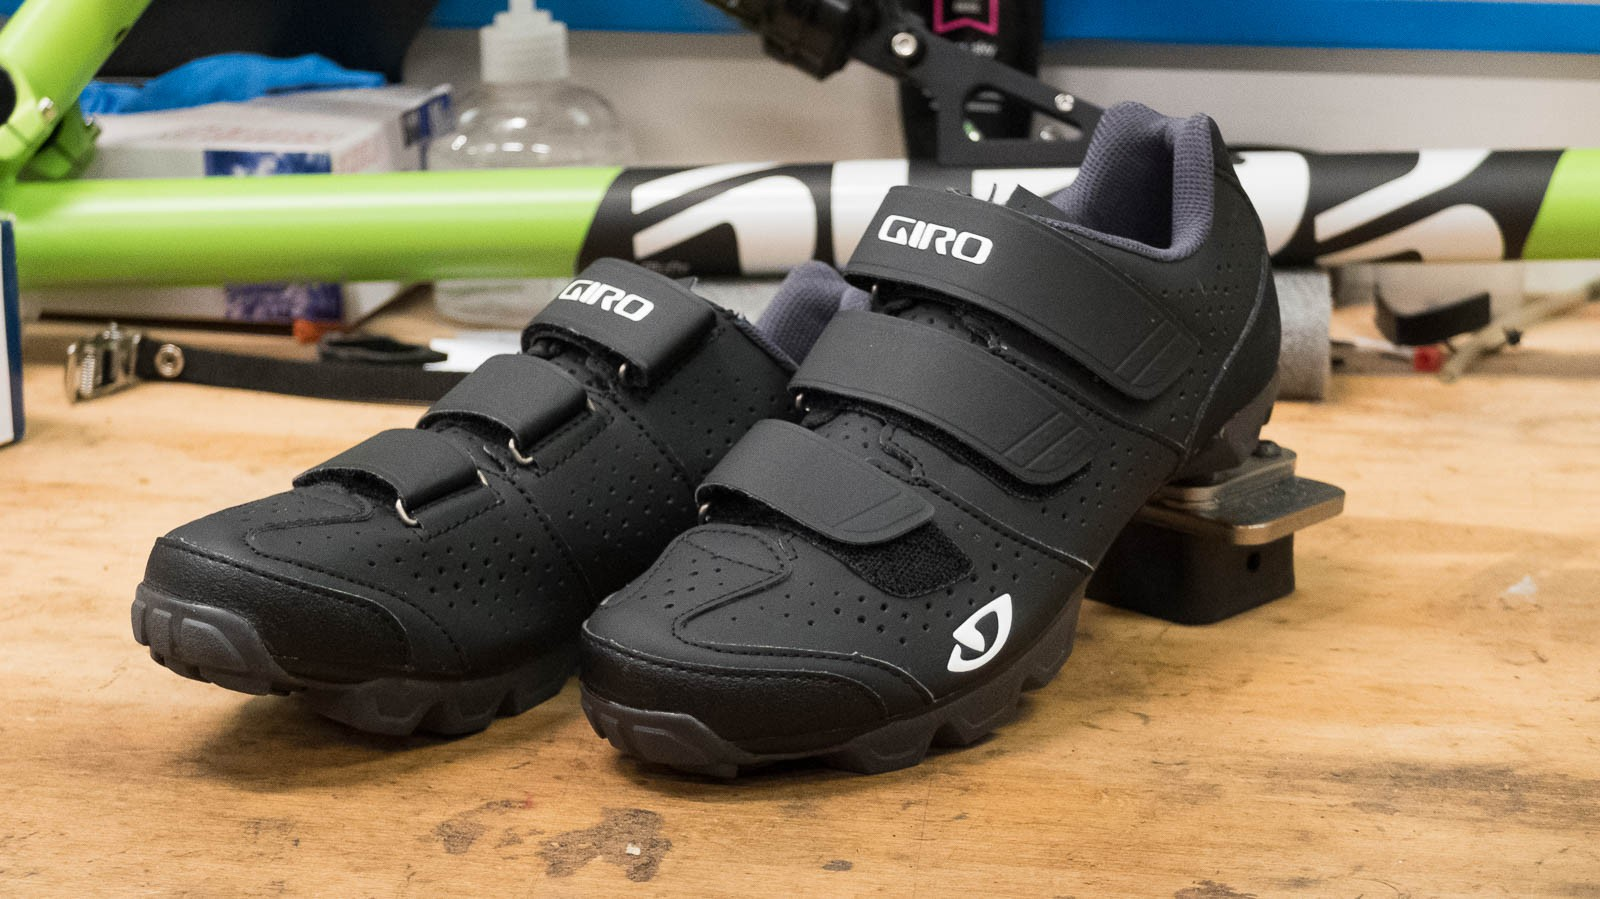 The Giro Riela R is the women's equivalent of the popular Carbide